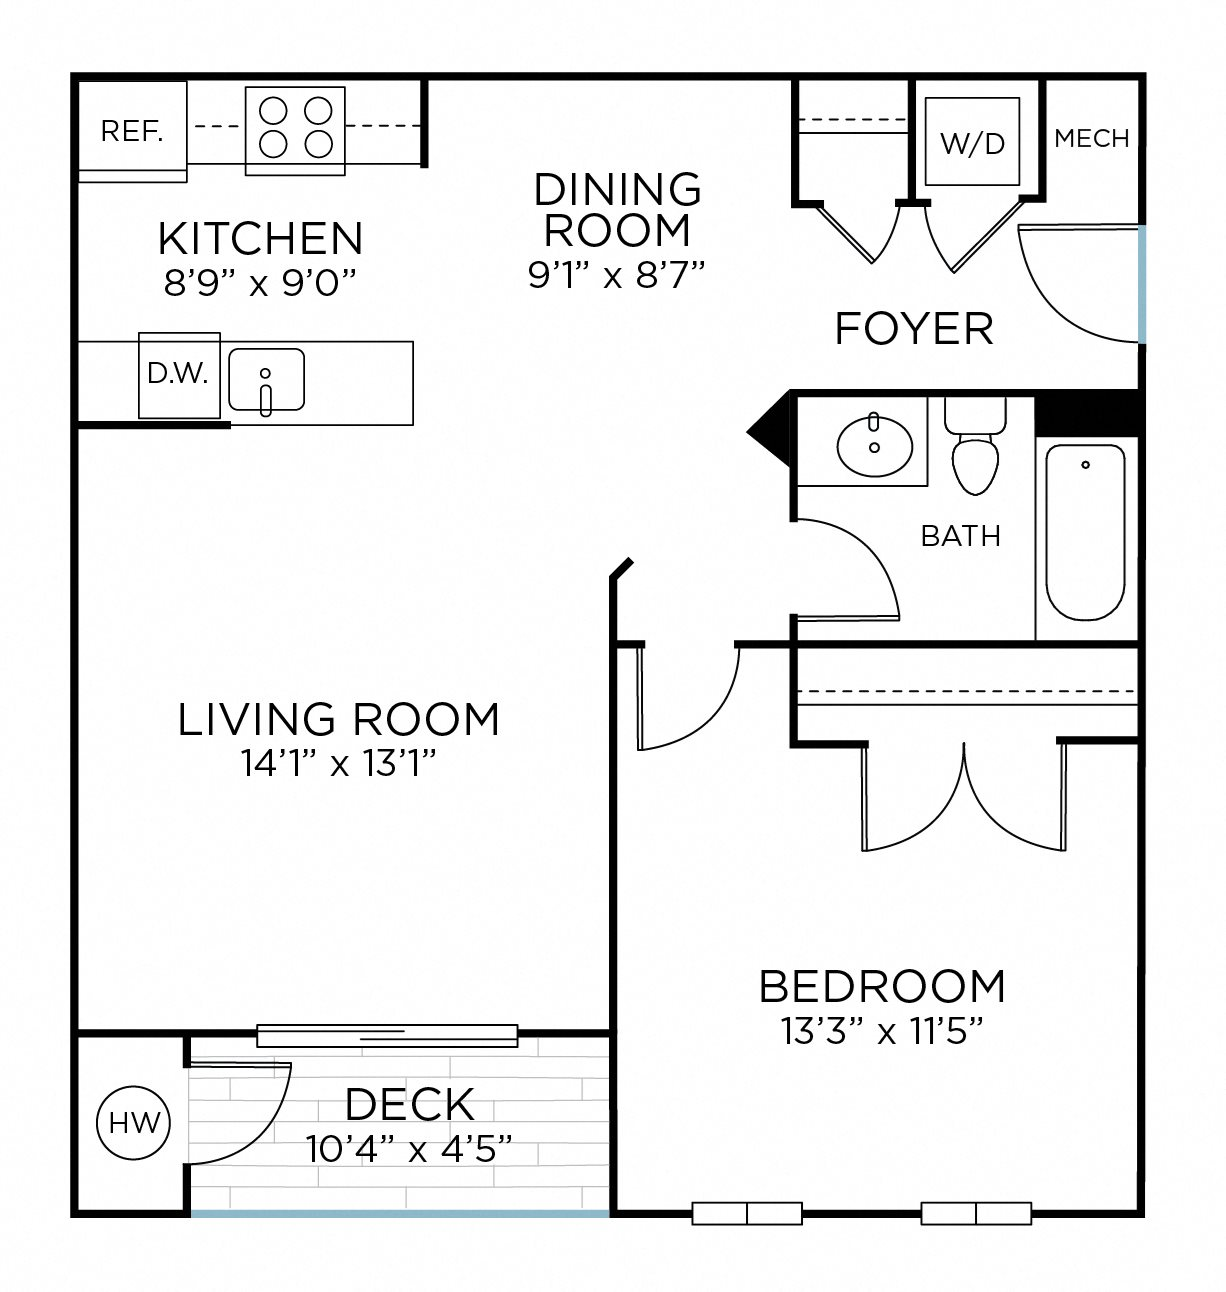 NORBECK One Bedroom/ One Bathroom (aa1) Floor Plan 1